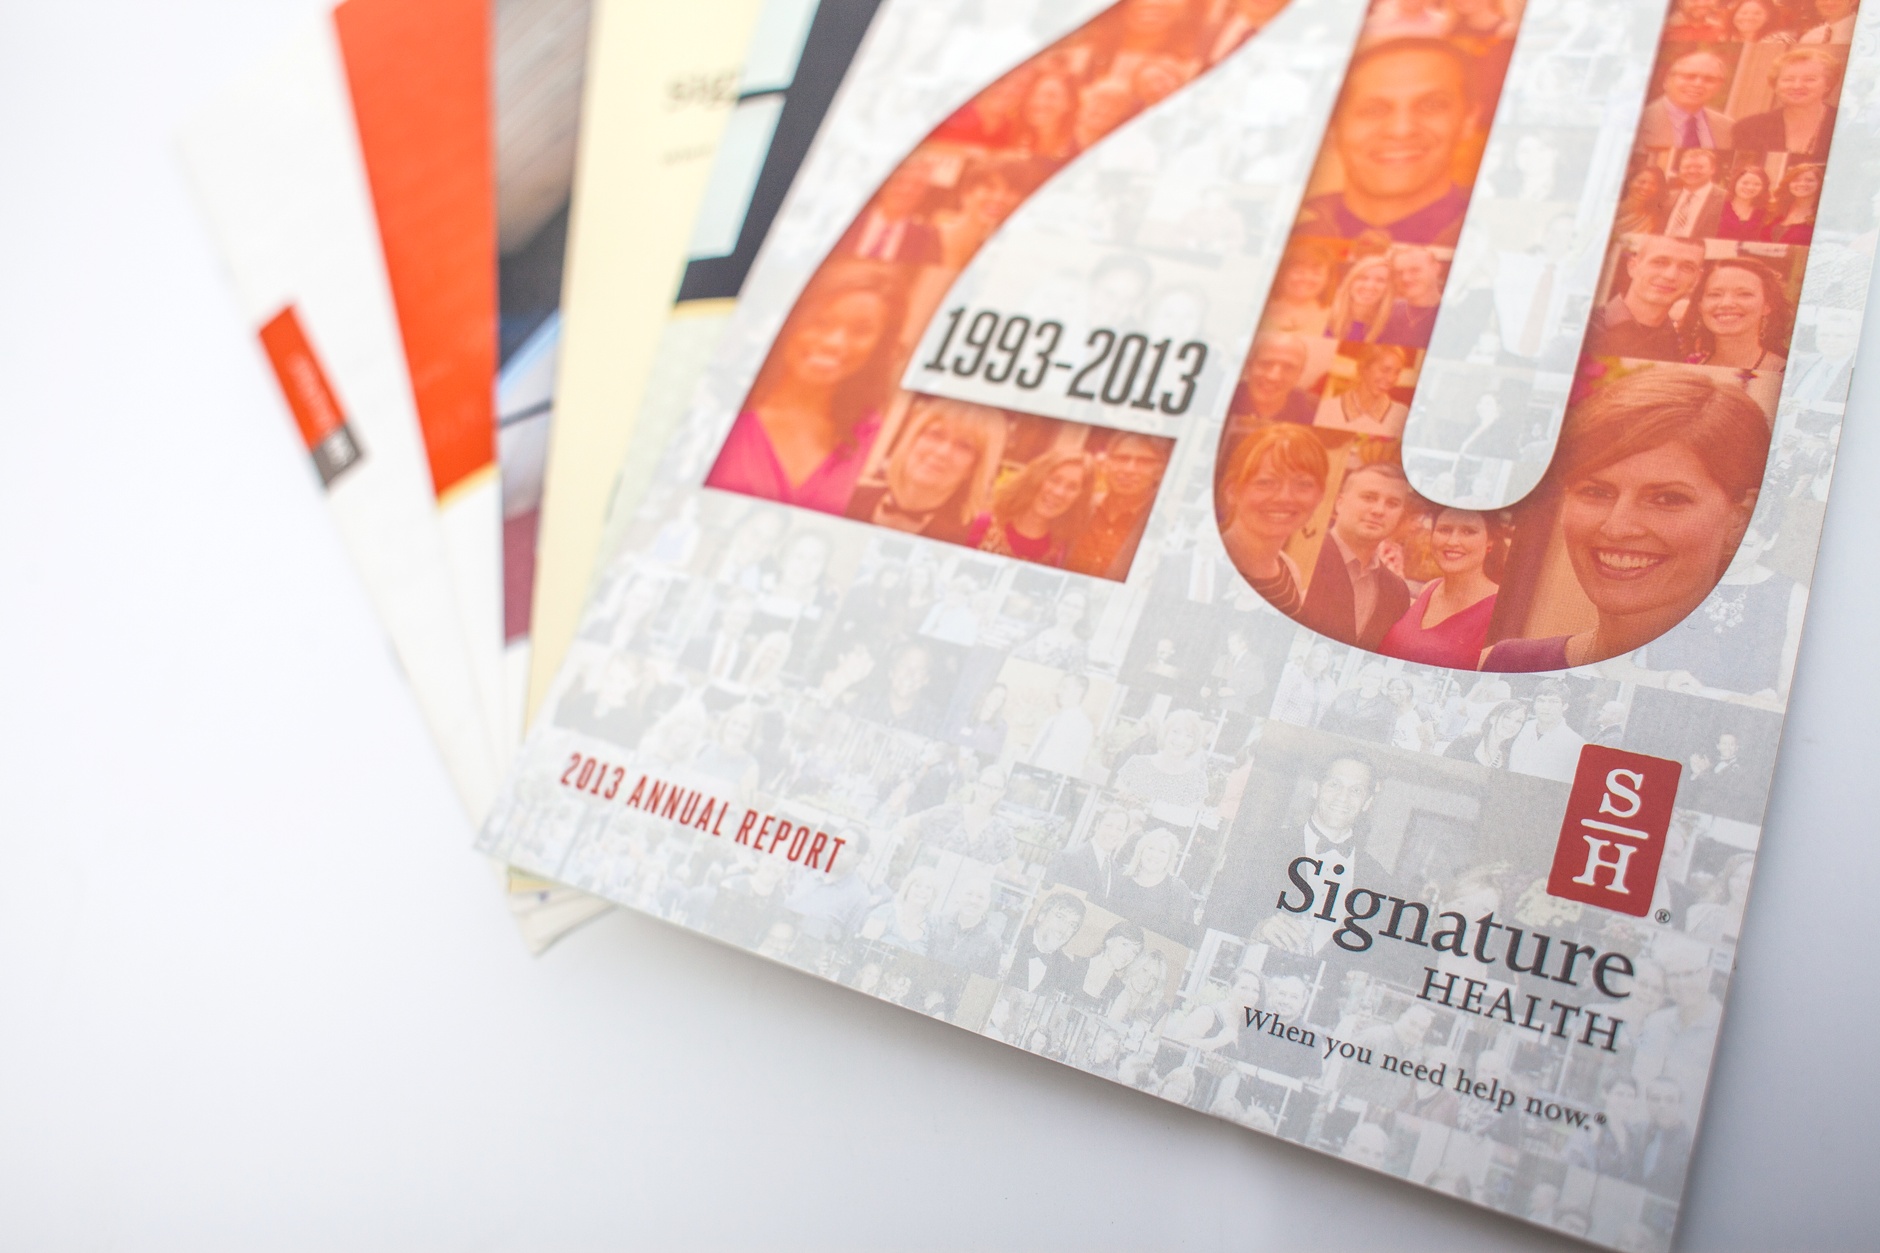 Signature Health 2013 Annual Report | Brand Identity